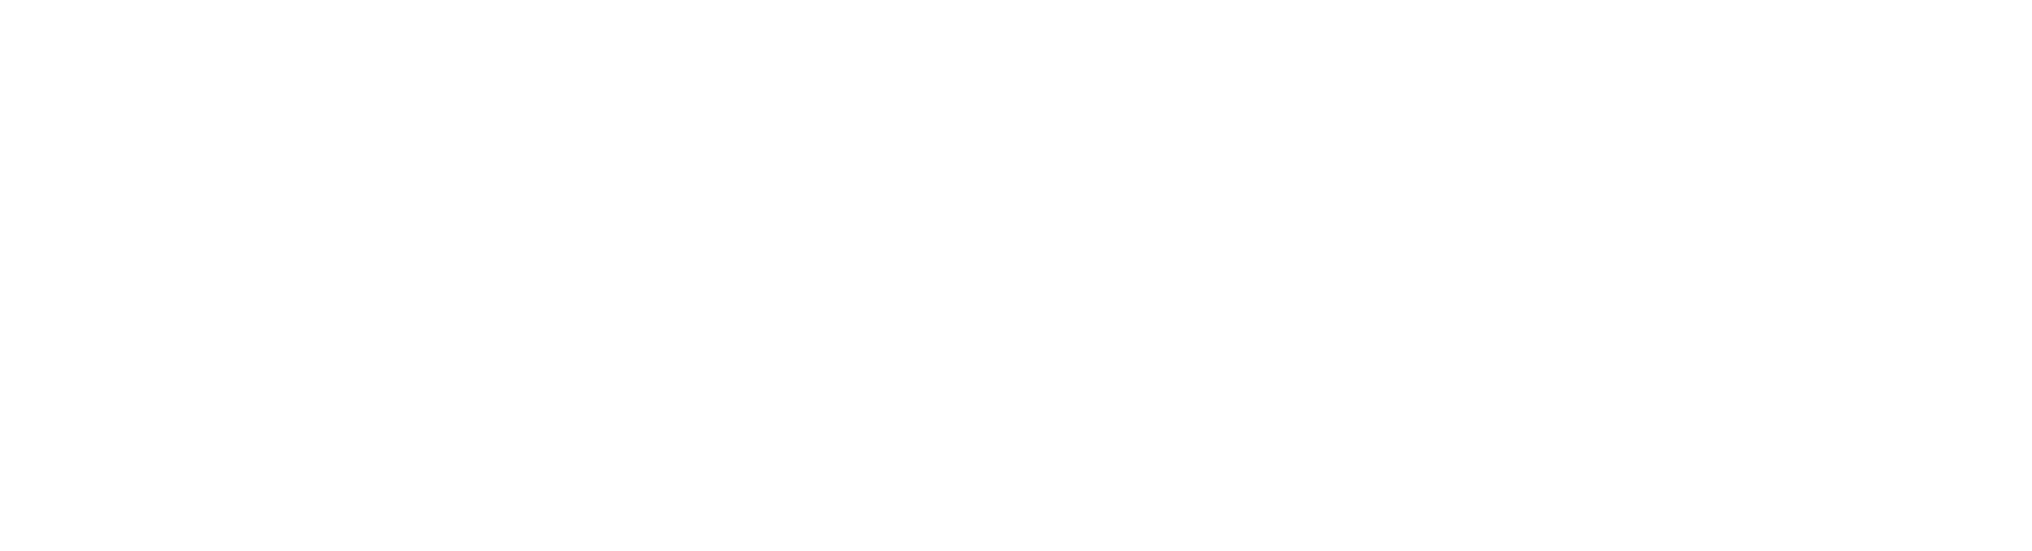 Civic Engaged Digital Storytelling